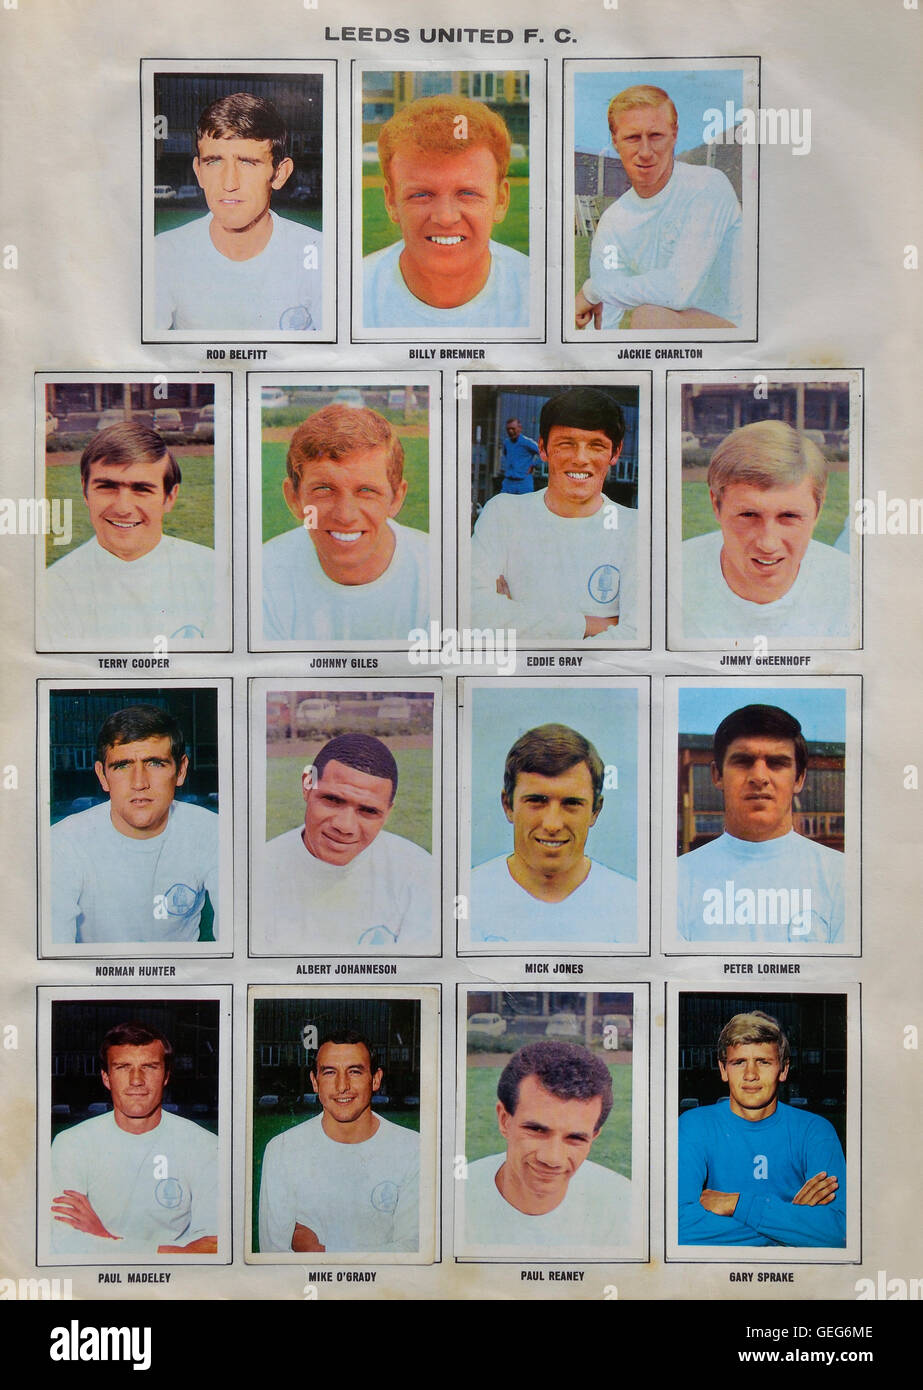 The wonderful world of soccer stars picture stamp album 1968-1969 of the Leeds United squad. Stock Photo